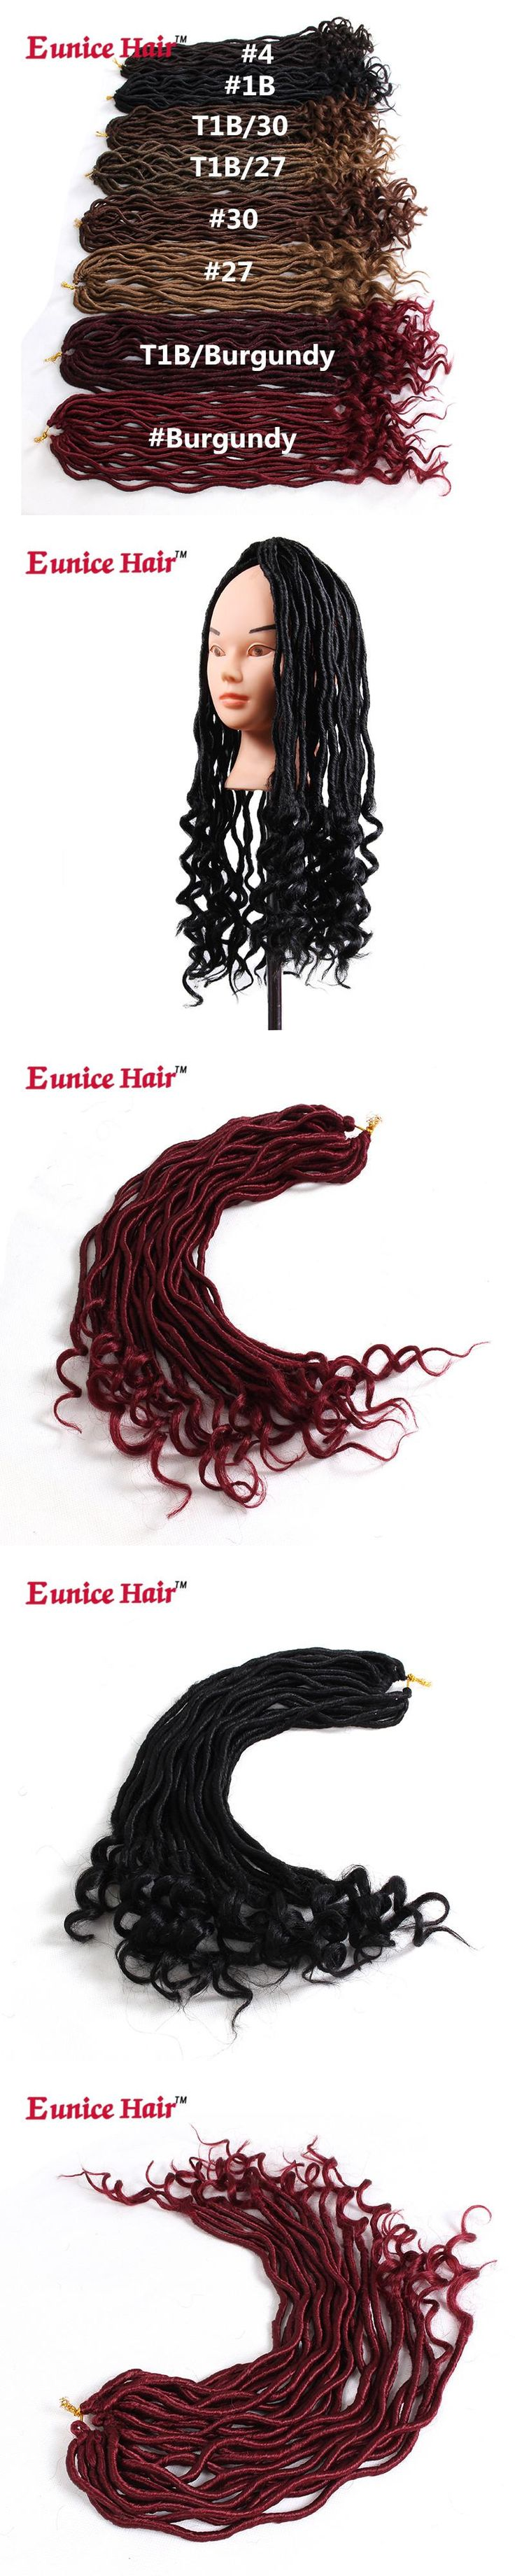 22 Roots Faux Locs Curly Crochet Hair 20 inch Eunice Crochet Braids Two tone Ombre brown/burgundy Synthetic Hair Extensions